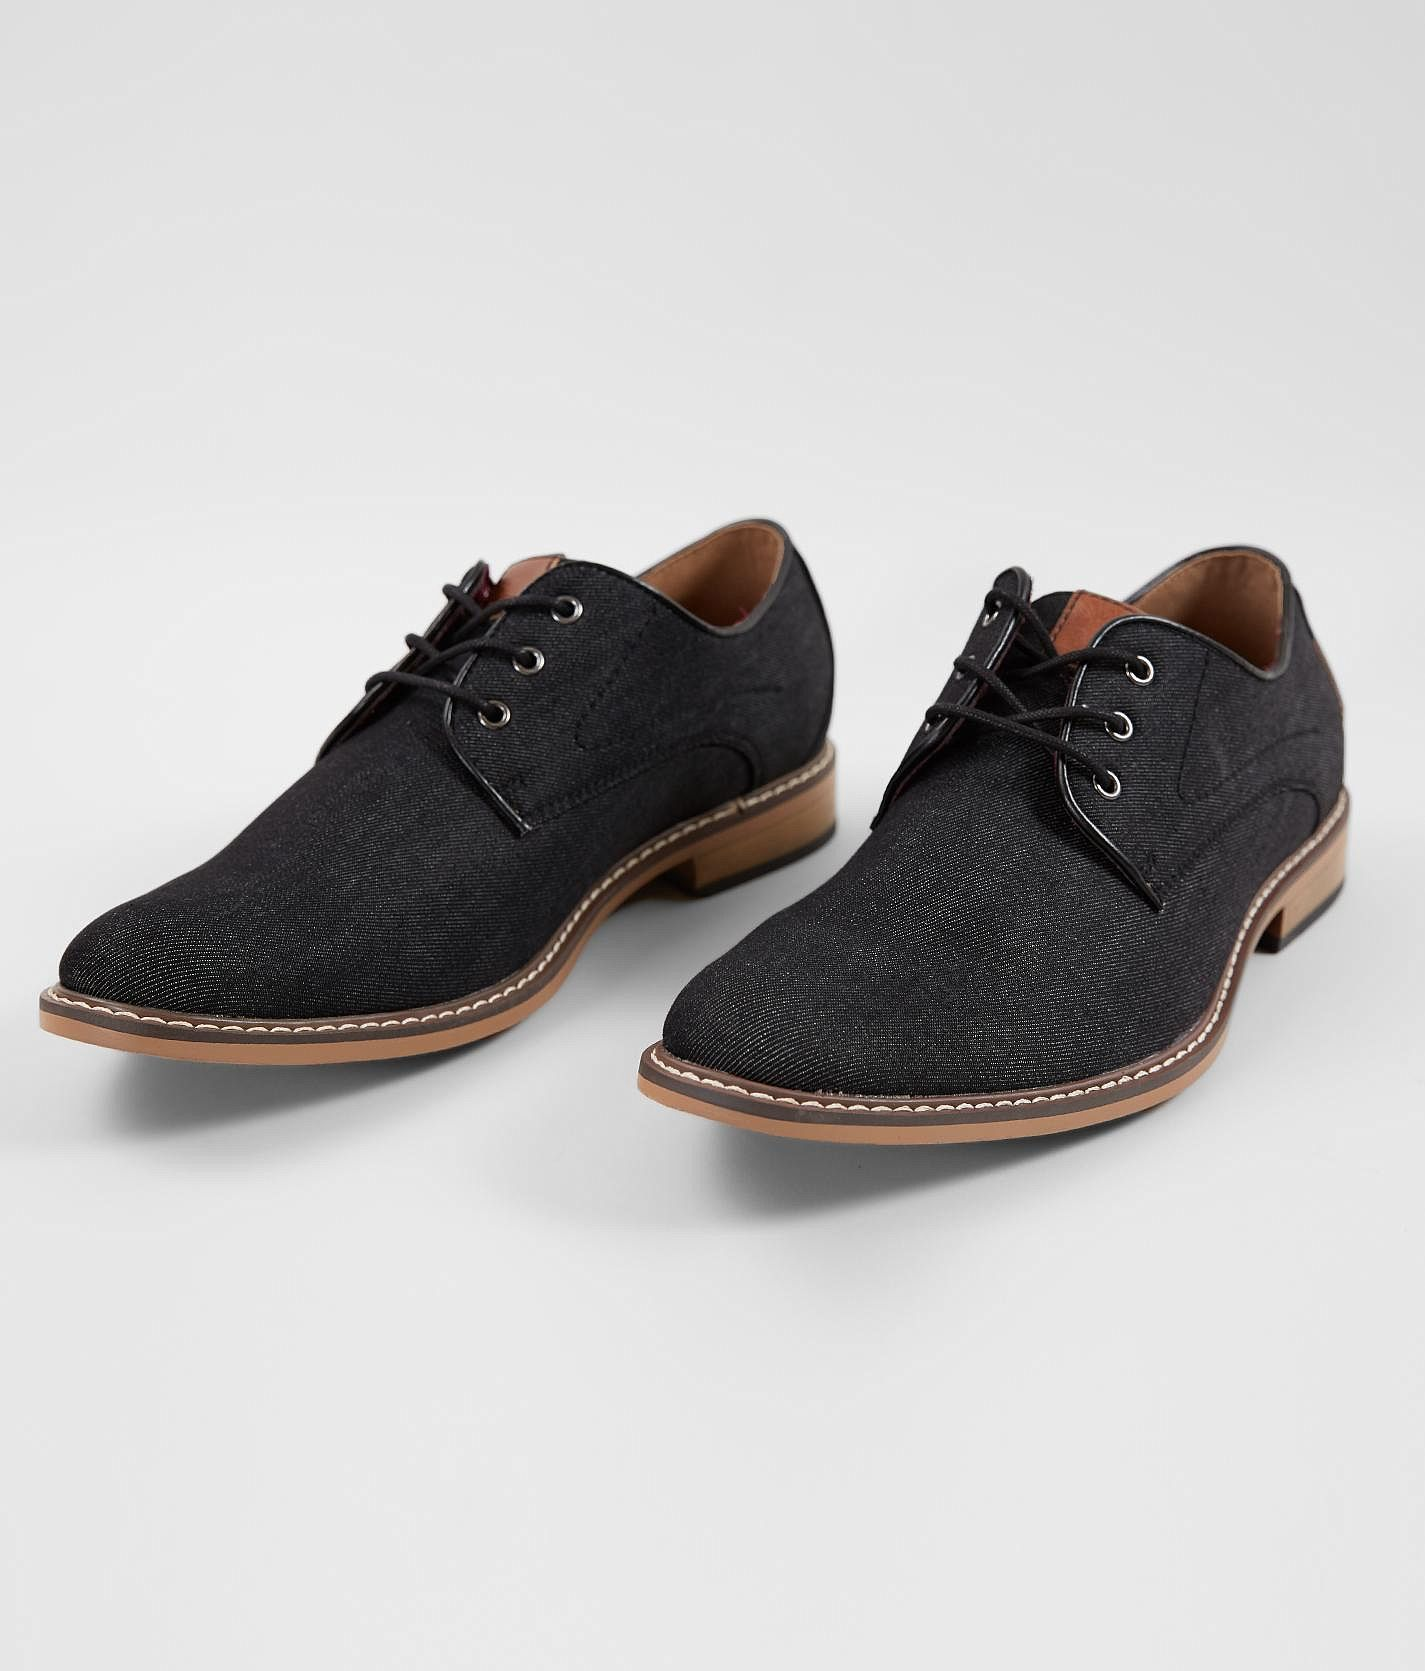 925893cf2fe Shop the Steve Madden M Alfiey Shoe for Men at Buckle.com. The ...